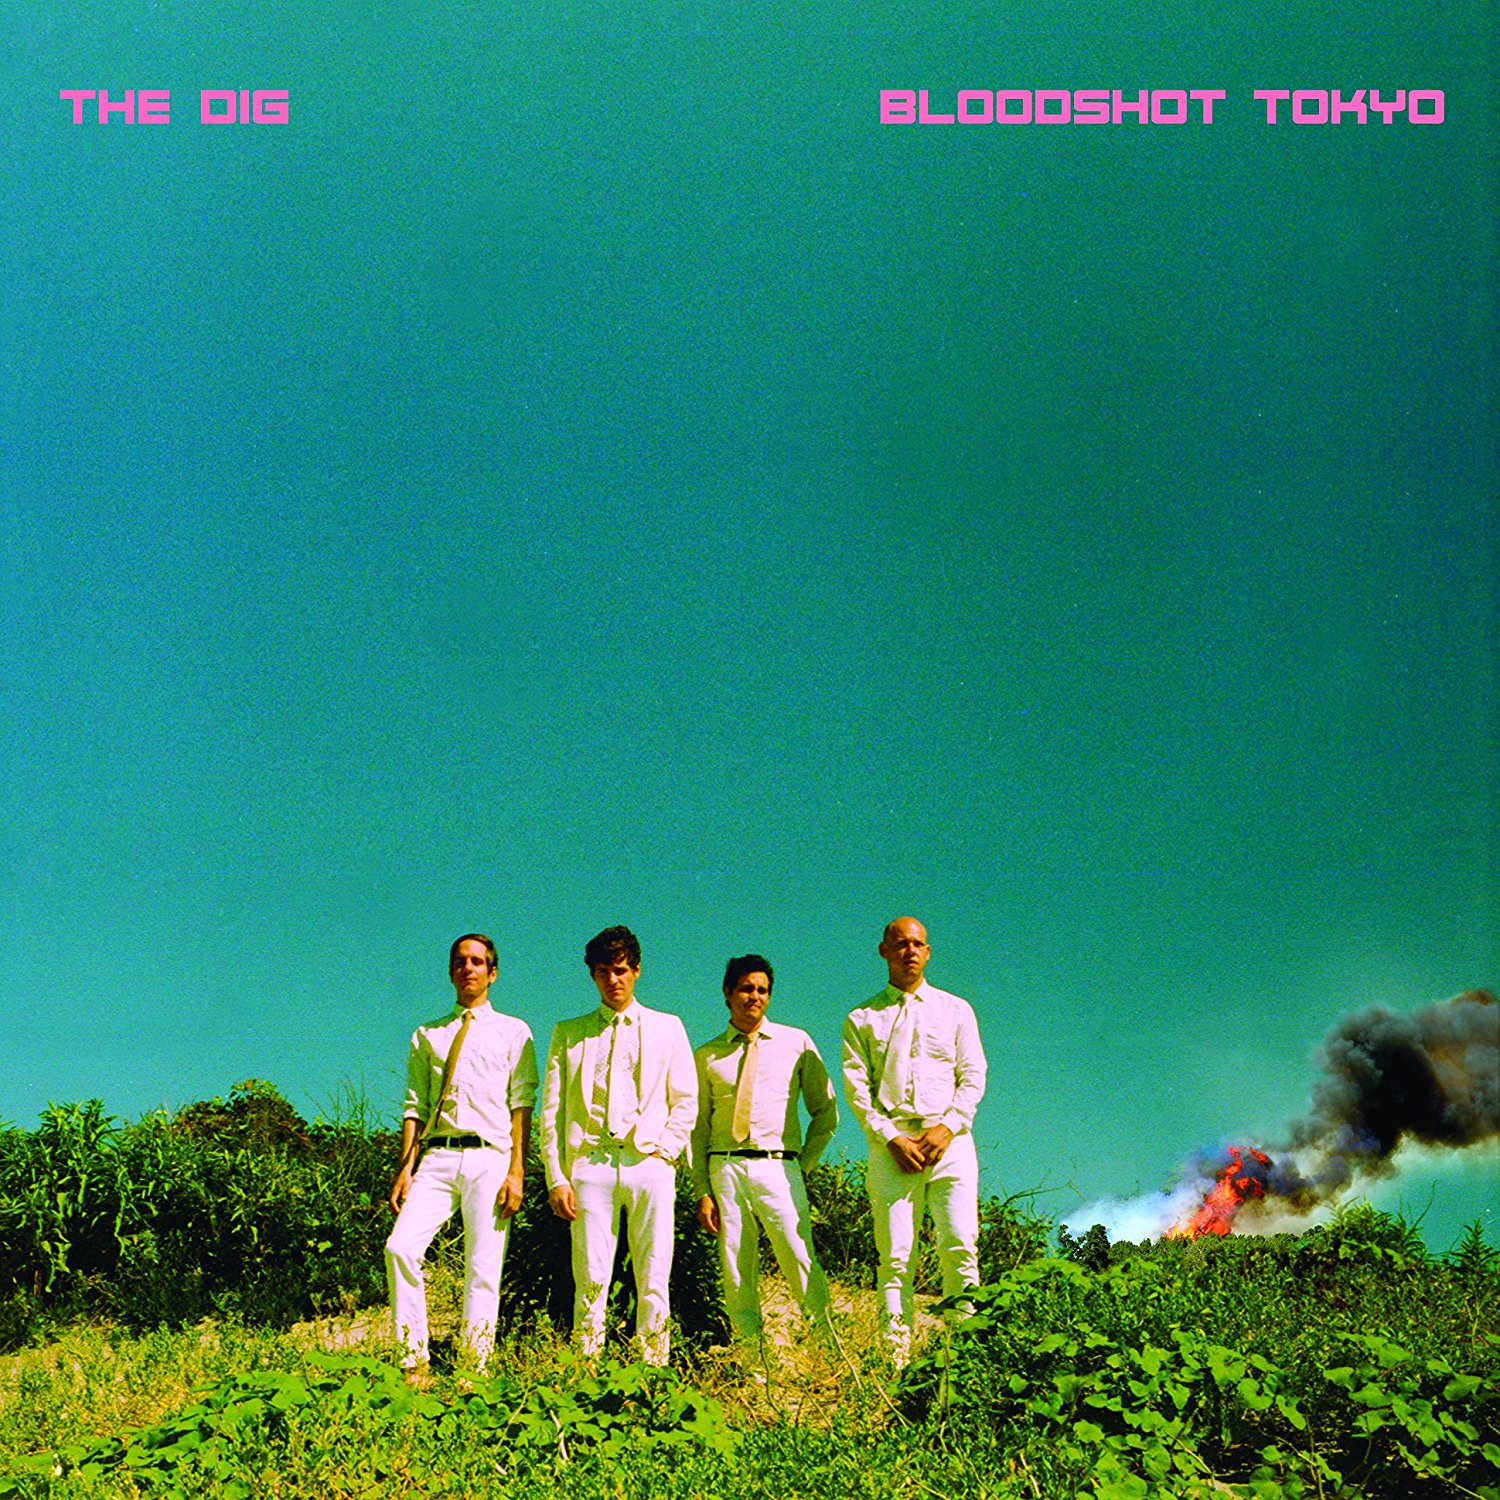 The Dig: Bloodshot Tokyo [Album Review]